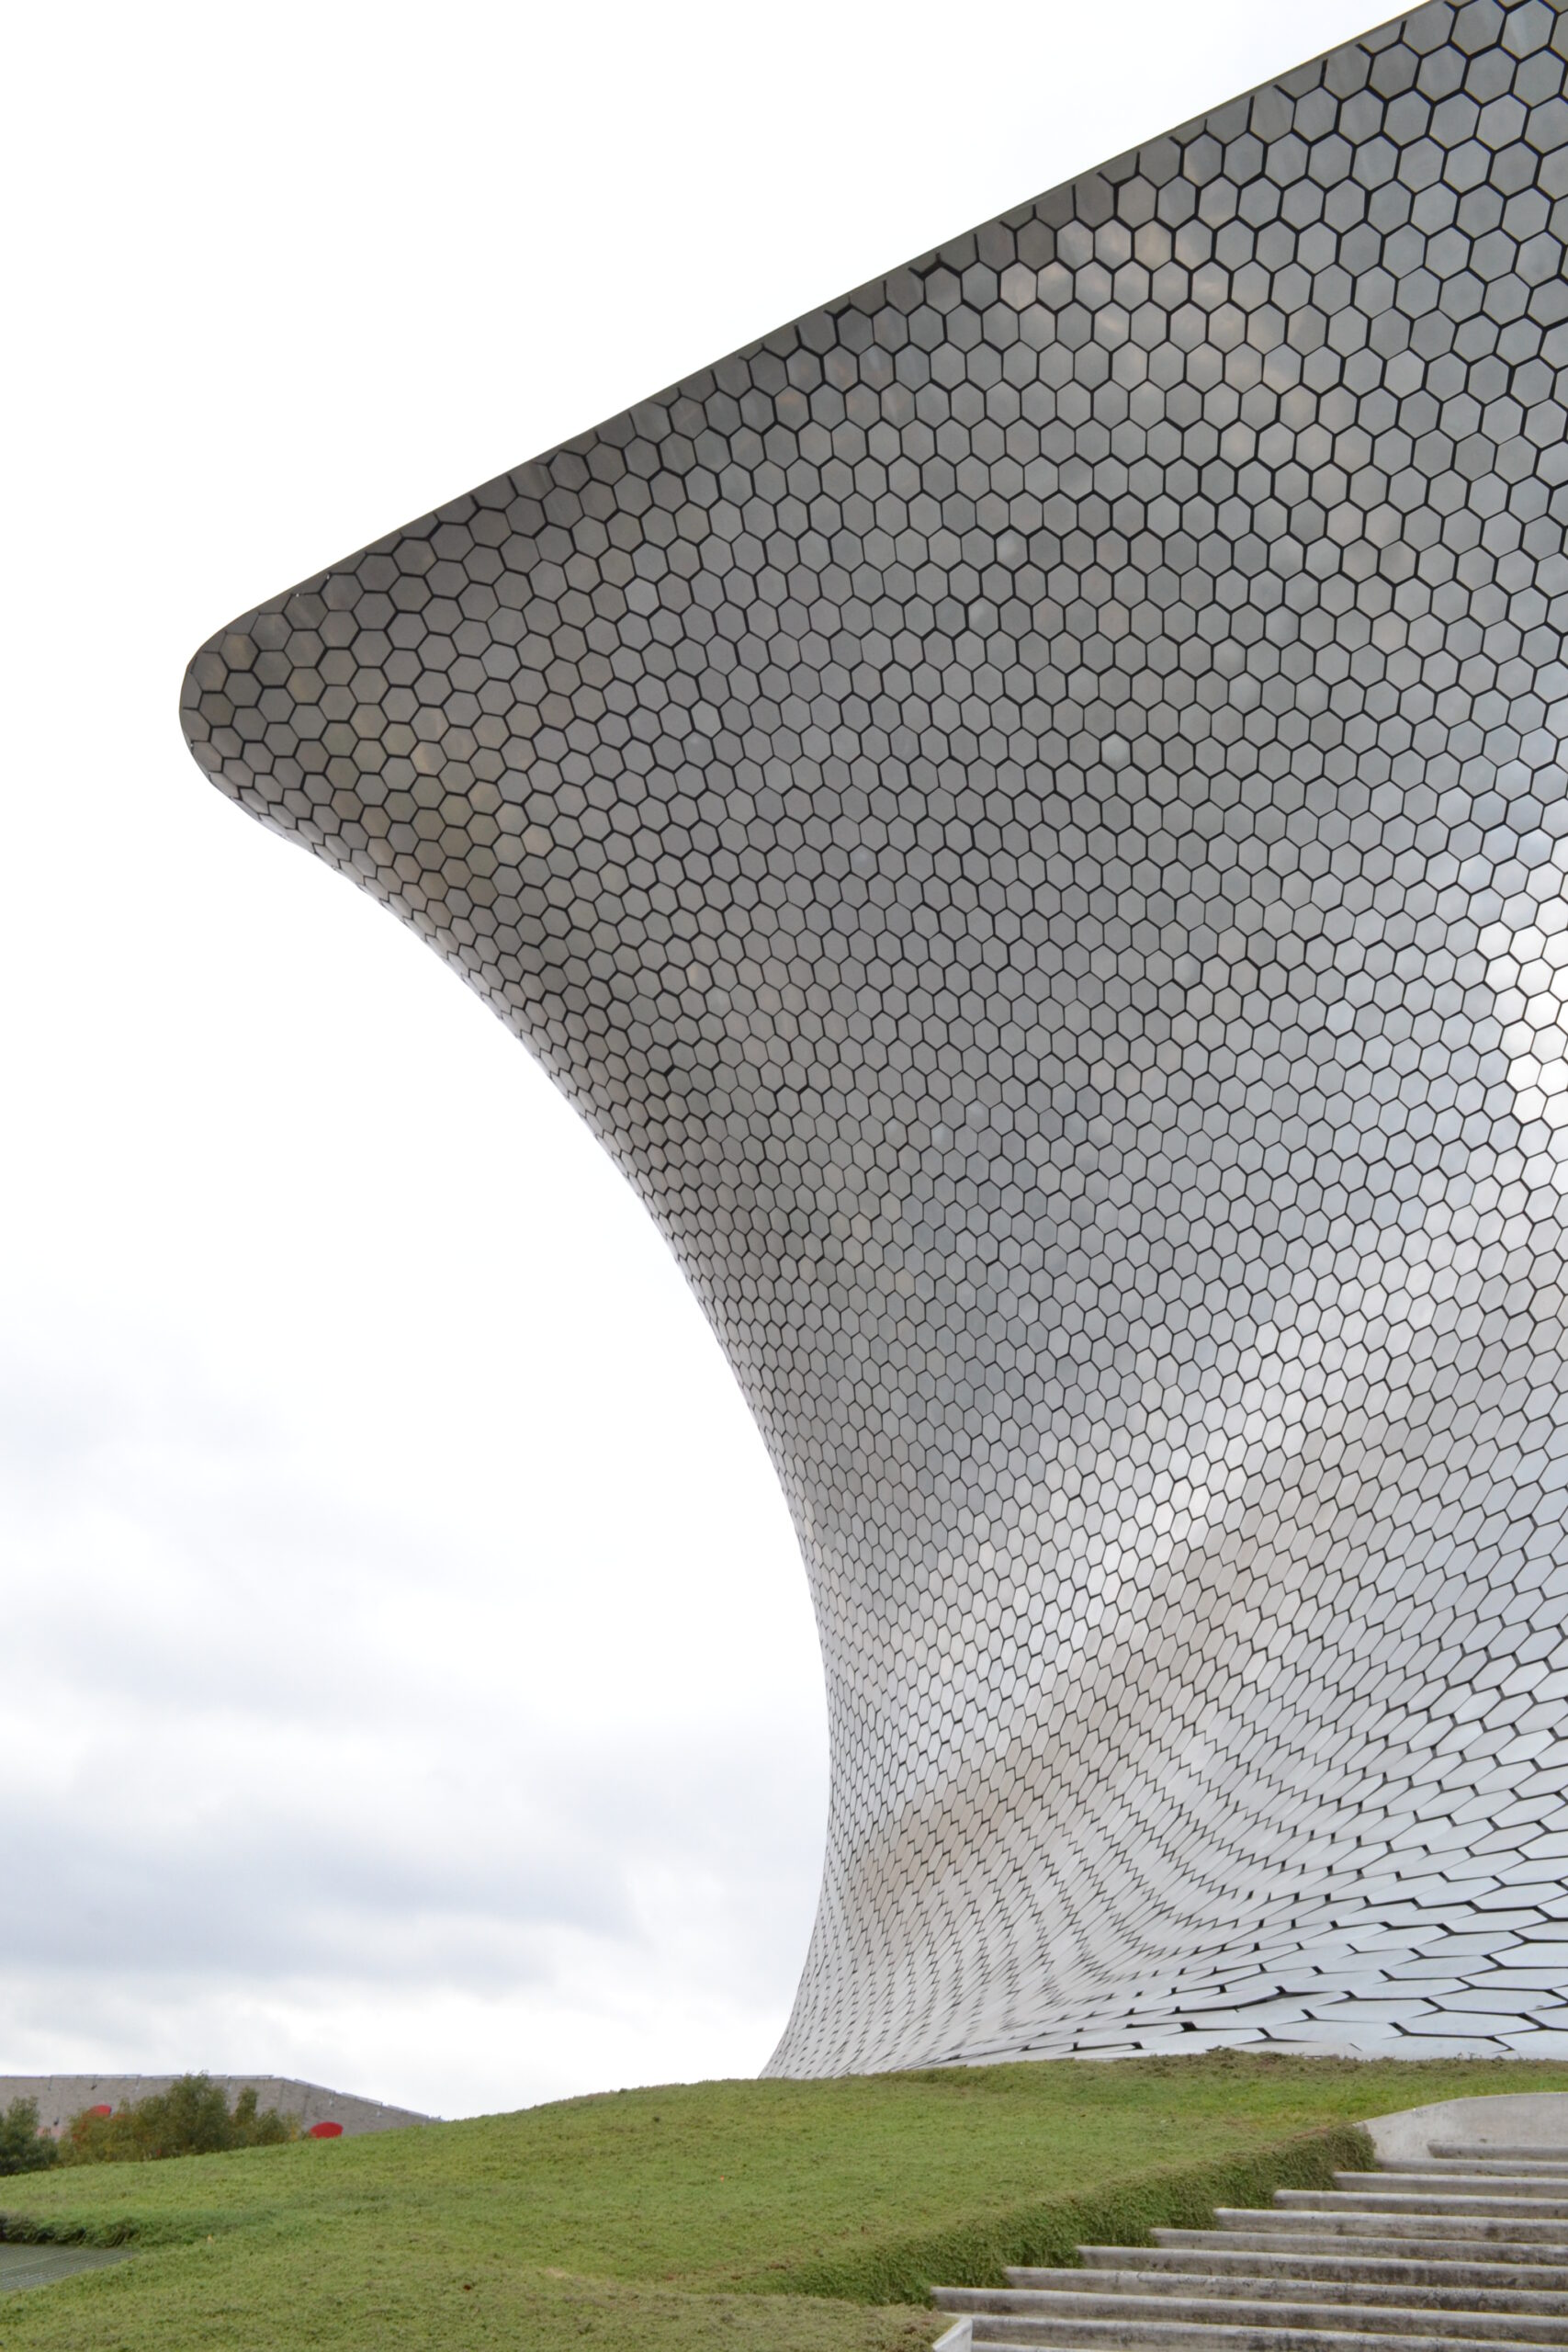 mexico city, museo soumaya, travel guide, museum, architecture, visit mexico, travel